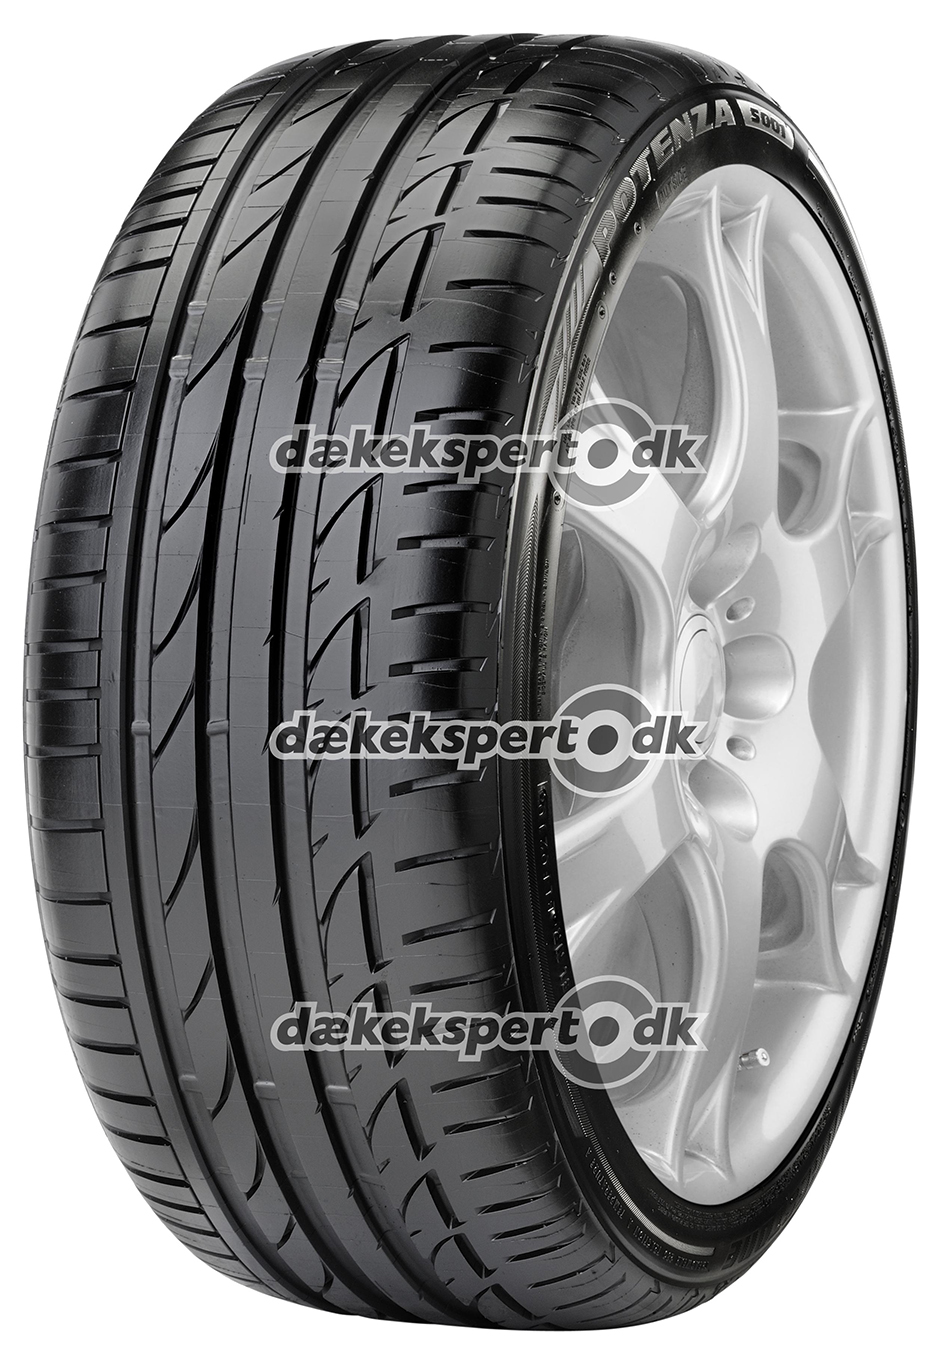 225/50 R17 94W Potenza S 001 RFT *  Potenza S 001 RFT *